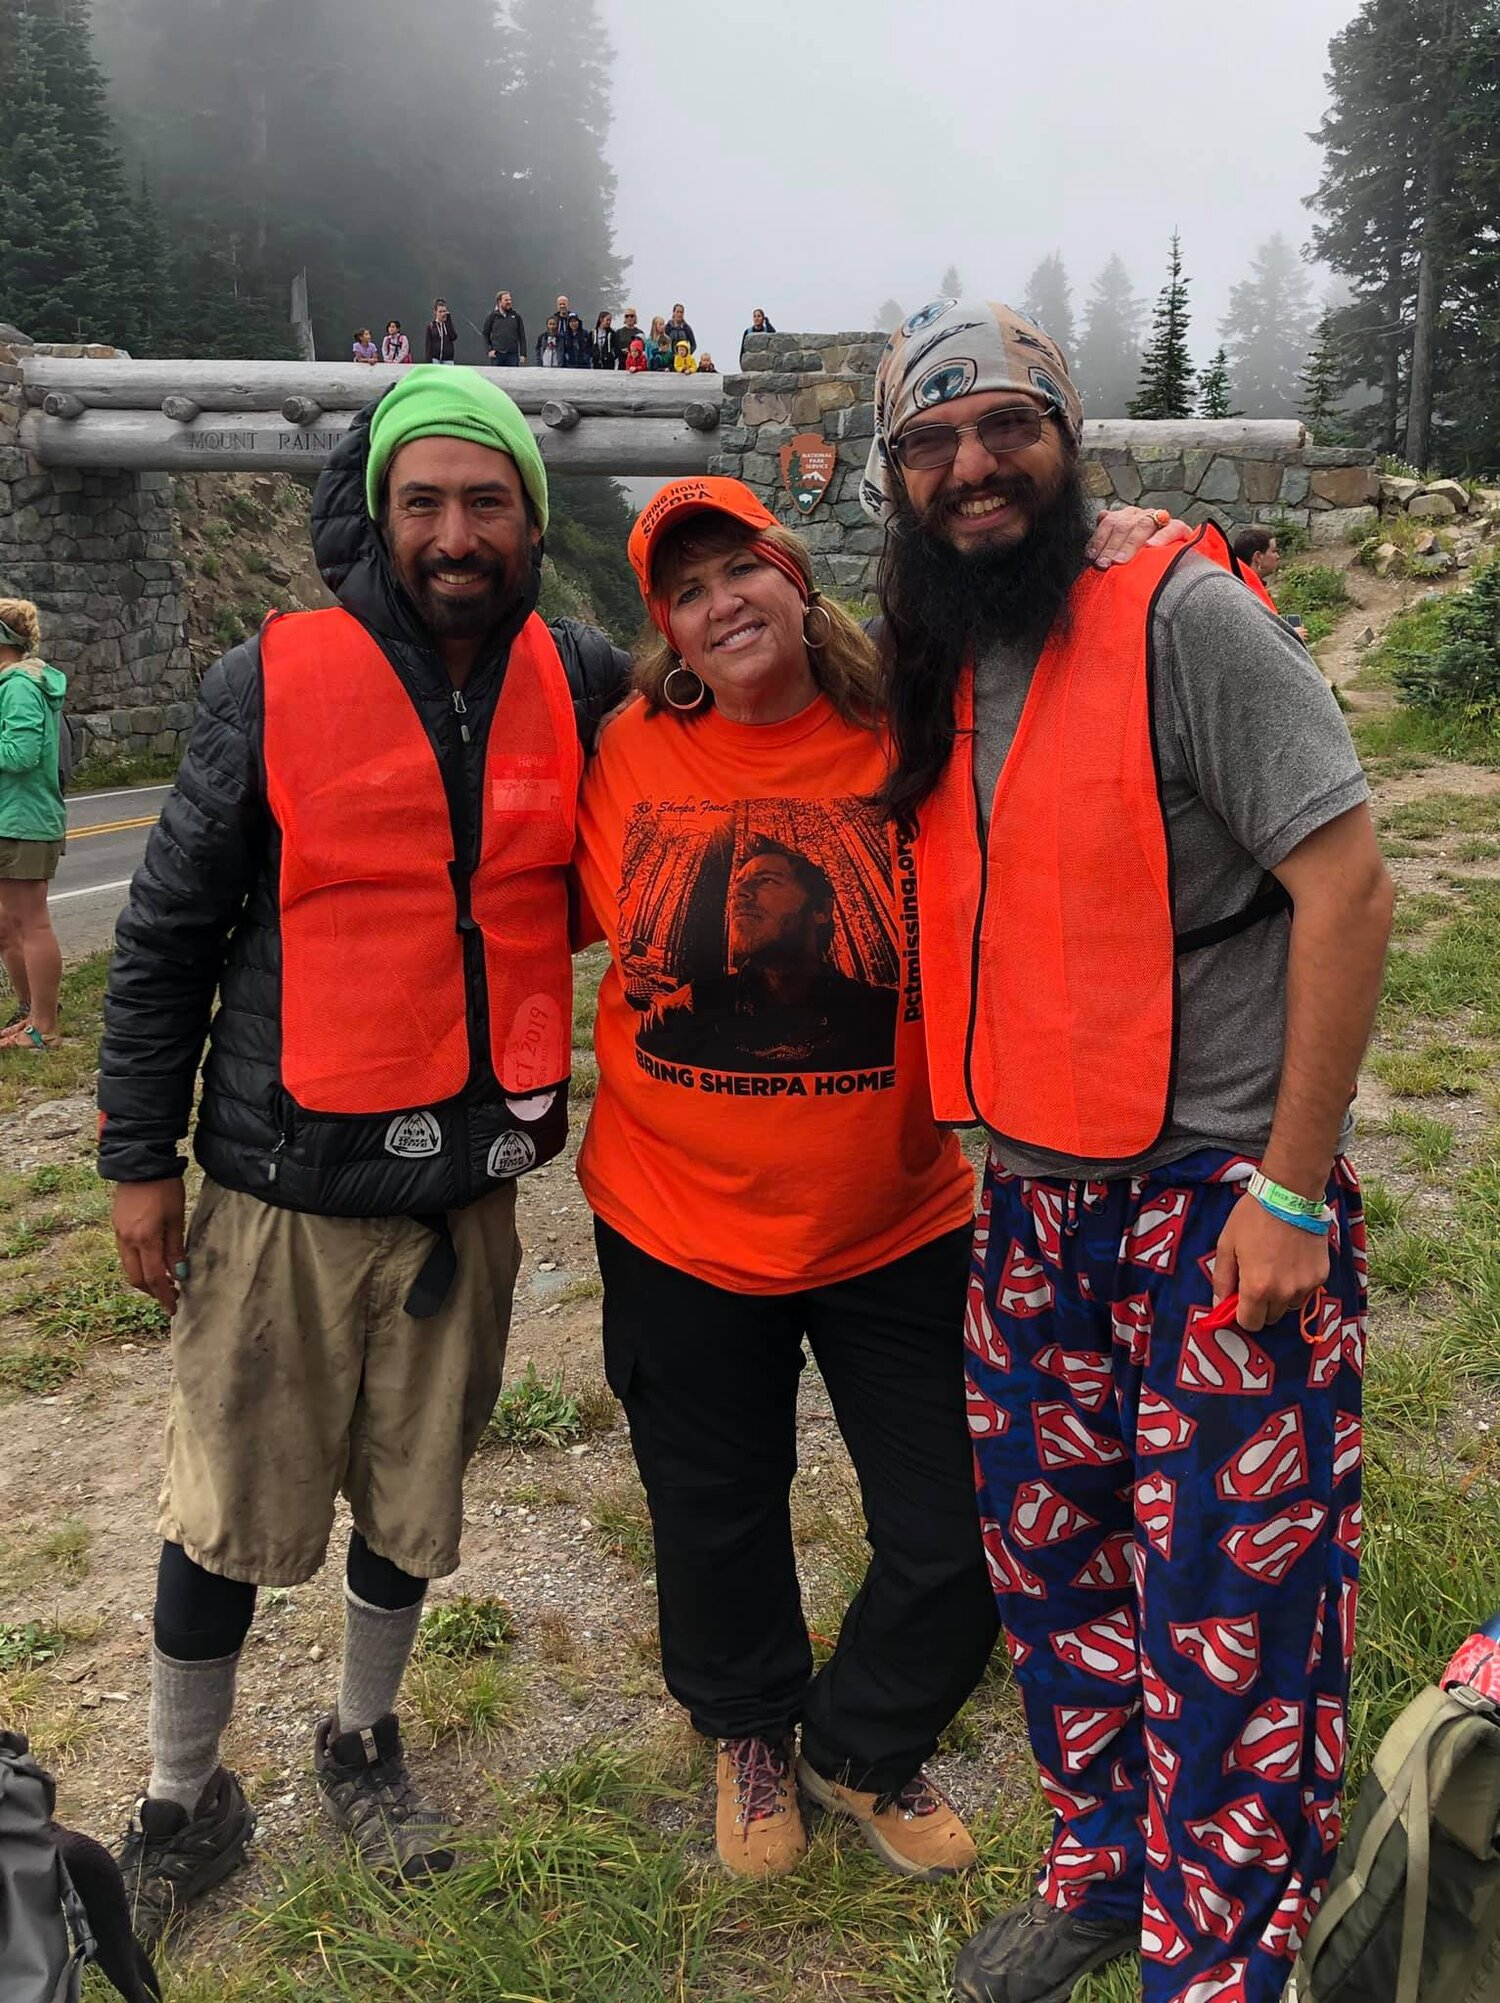 Sally with two PCT thru-hikers who volunteered to help find Kris